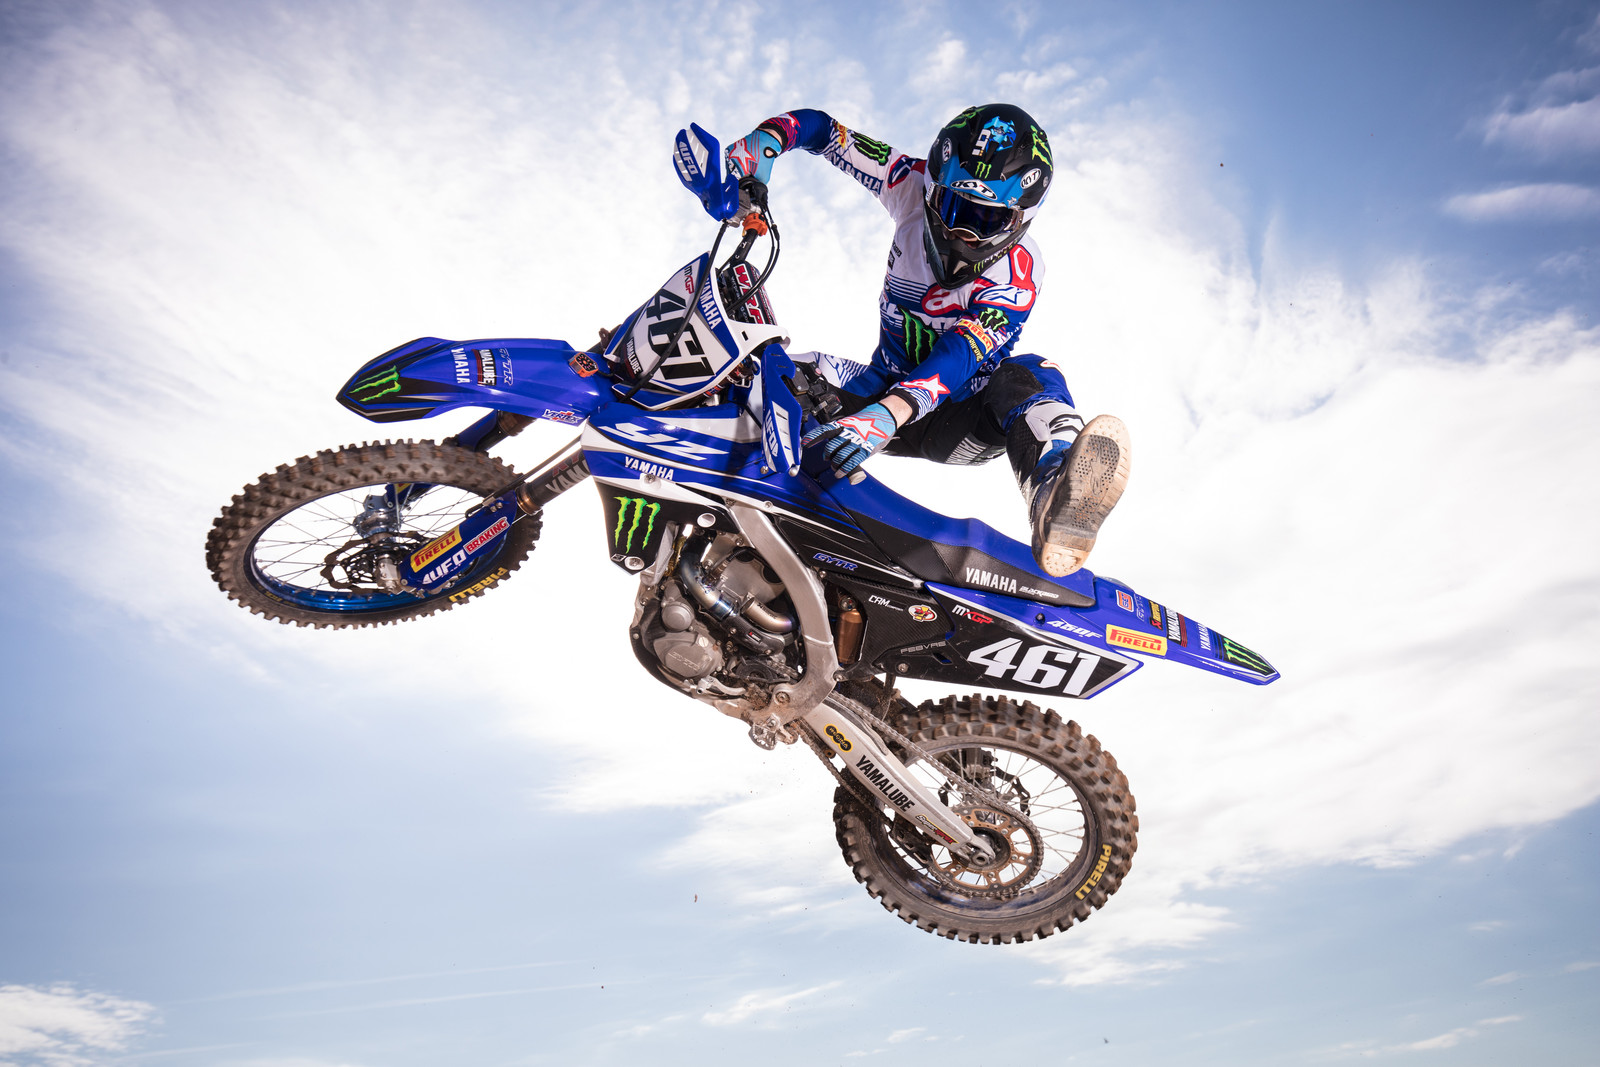 Romain Febvre - First Look: 2017 Monster Energy & Wilvo Yamaha MXGP Teams - Motocross Pictures - Vital MX